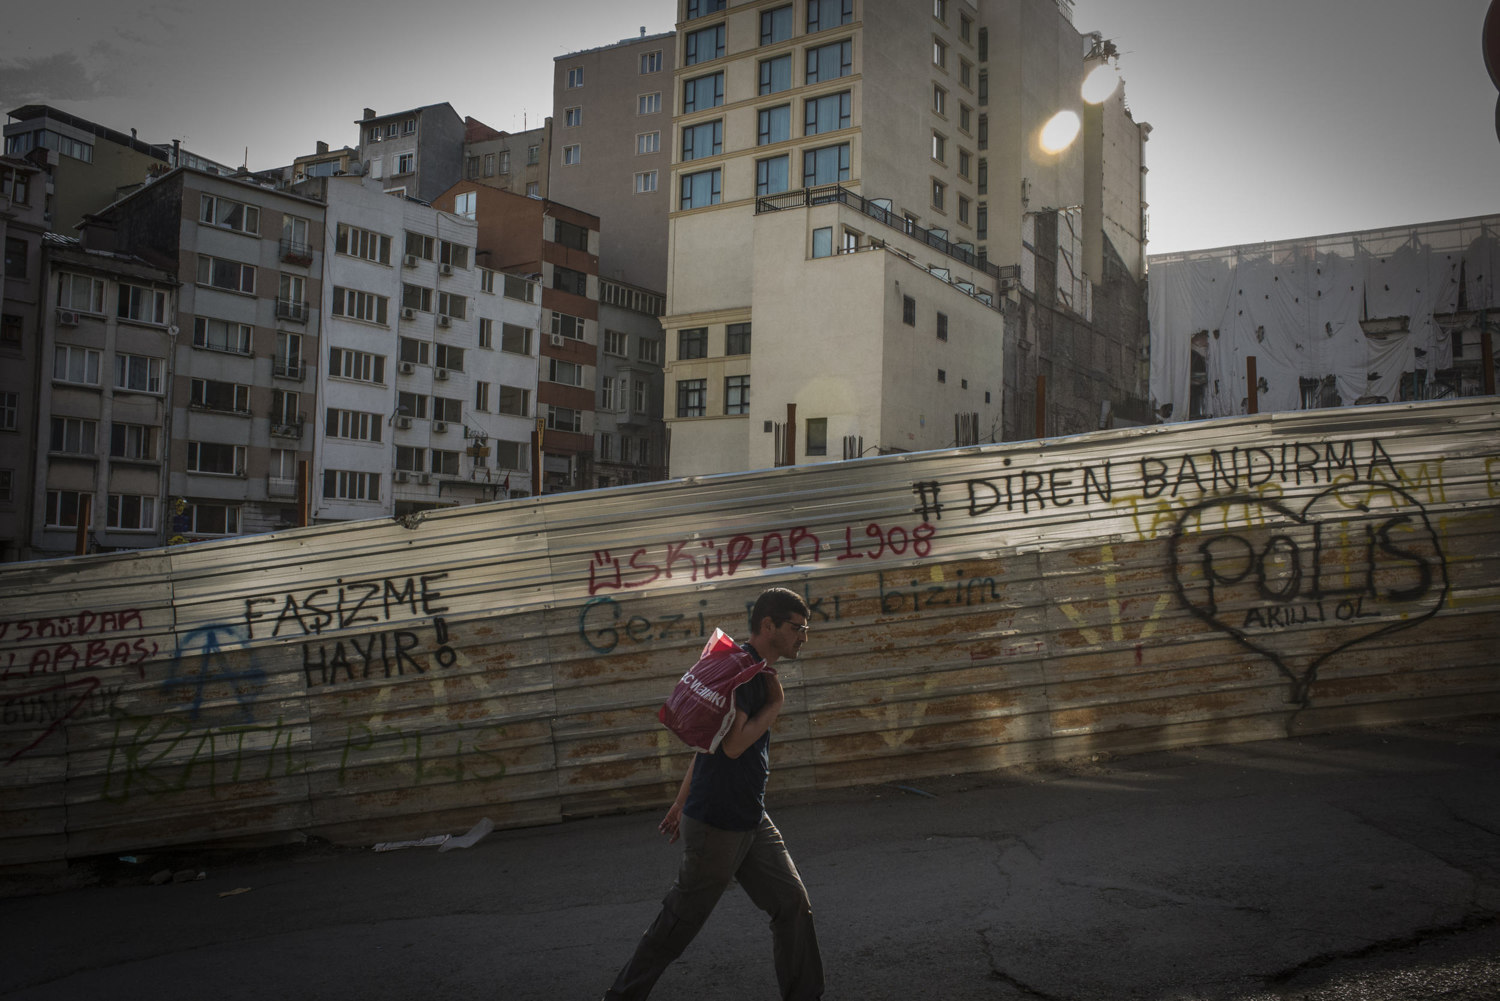 A man walks up a street adjacent to Taksim square in front of anti-government graffiti, where protesters have camped out for weeks. June 6, 2013.